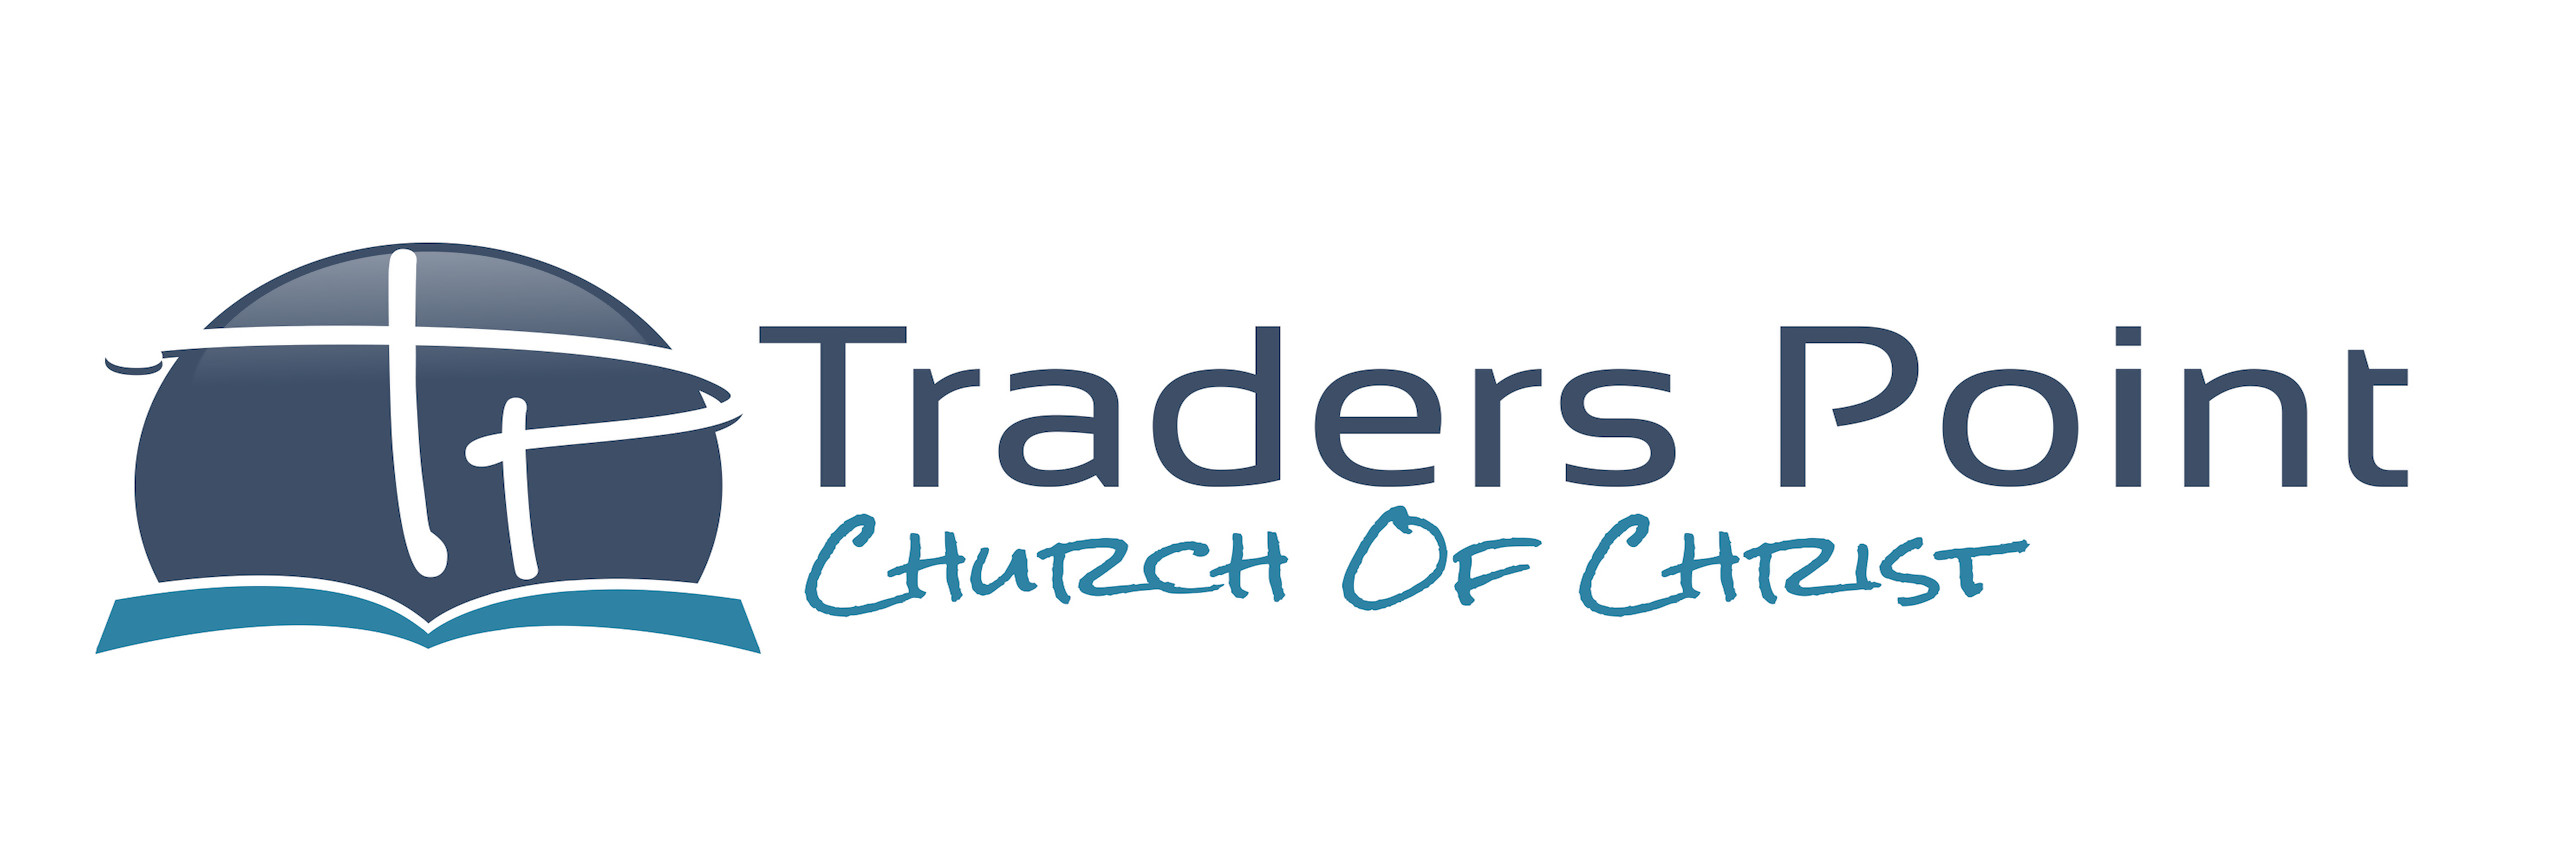 Traders Point Church of Christ